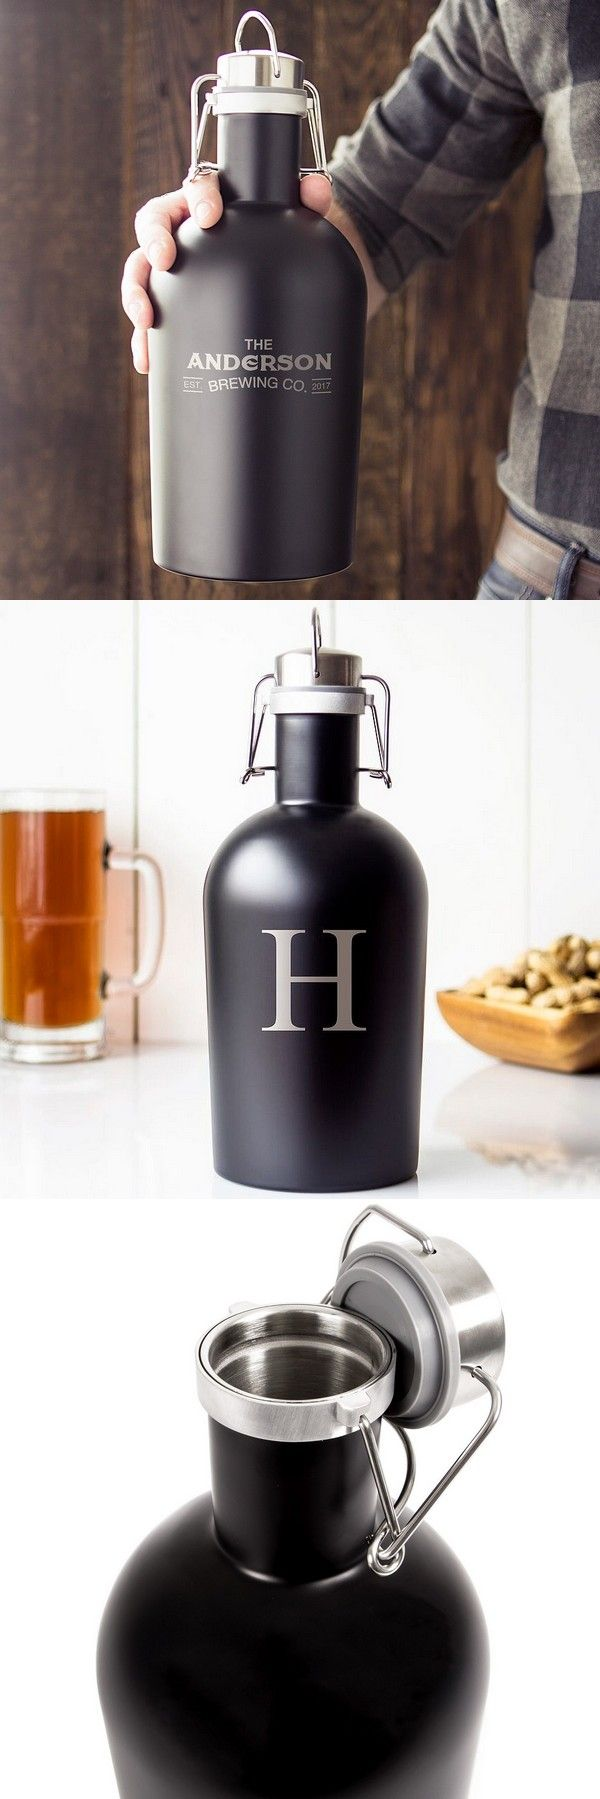 Personalized Black Half Gallon Stainless Steel Growler Stainless Steel Growler Cathy S Concepts Beer Gifts